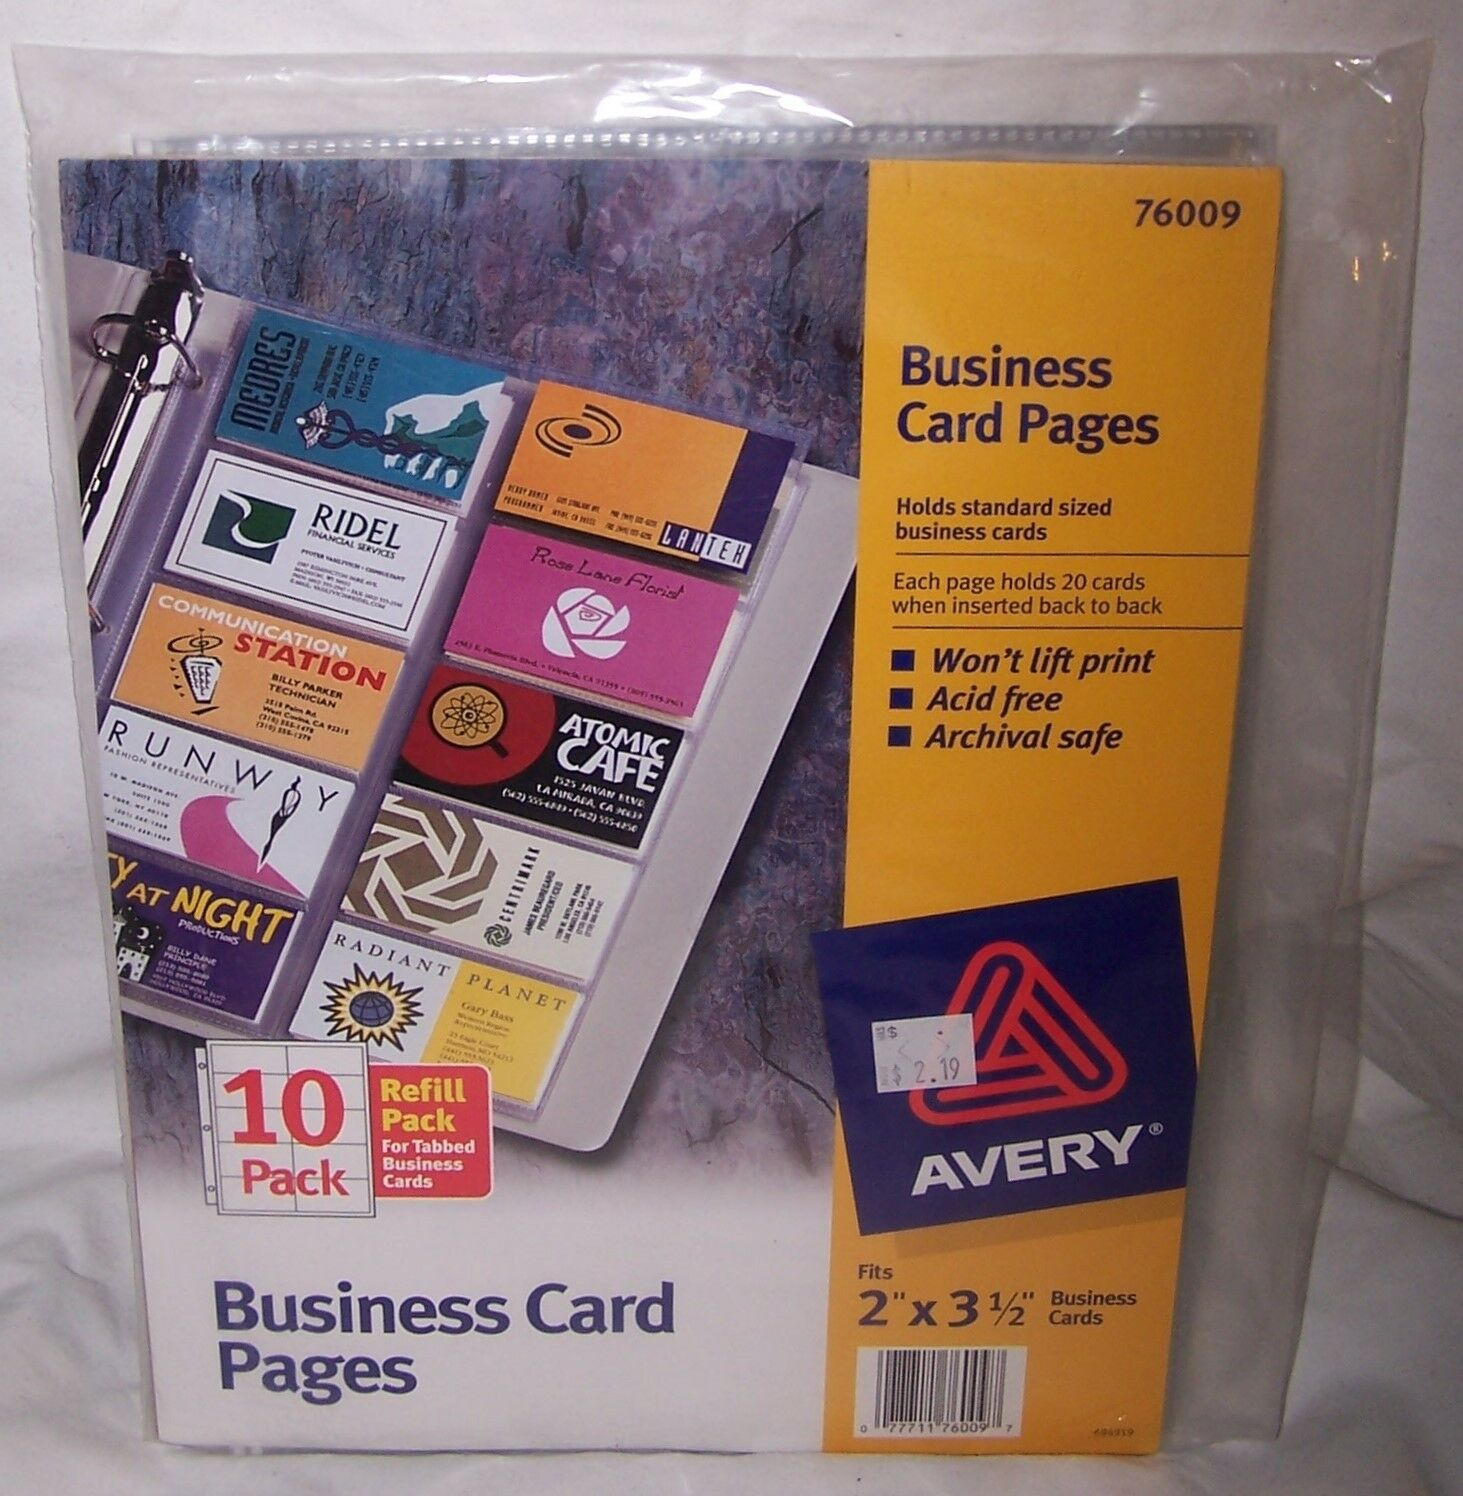 Avery business card pages pack of 10 76009 ebay picture 1 of 1 colourmoves Choice Image